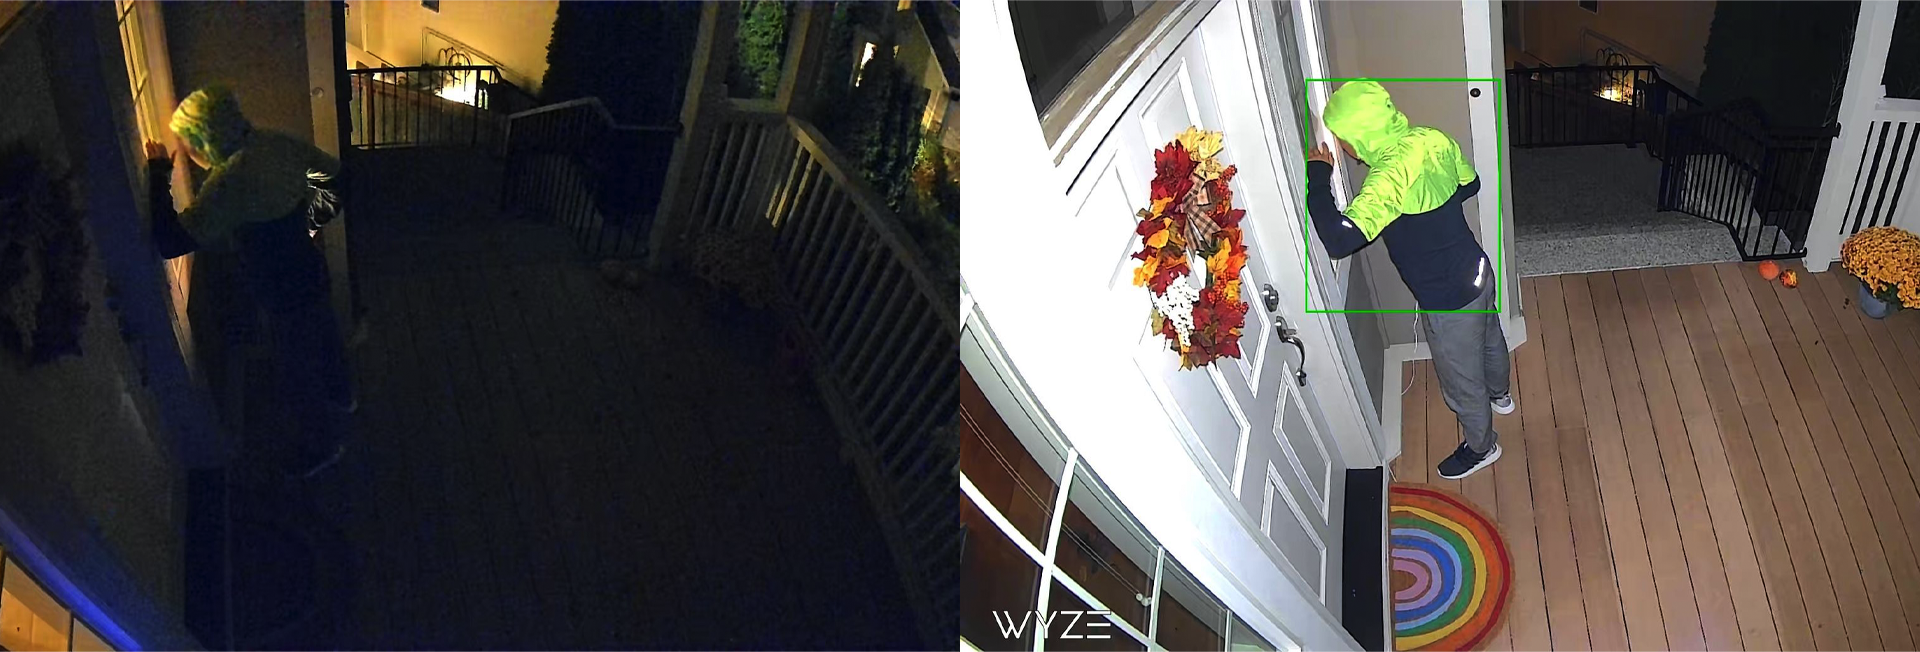 Photos of a man knocking on a door at night with the Wyze Cam Spotlight turned on and off.